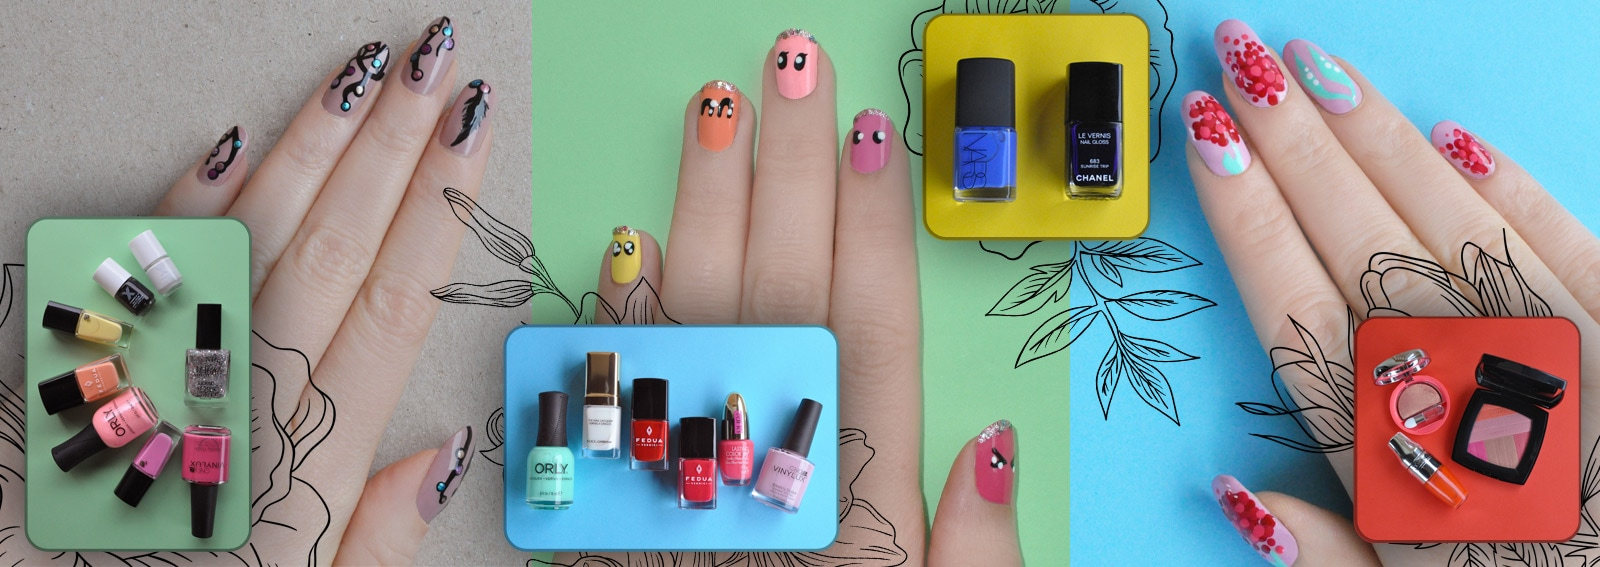 cover-le-nail-art-di-nonsolokawaii-desktop